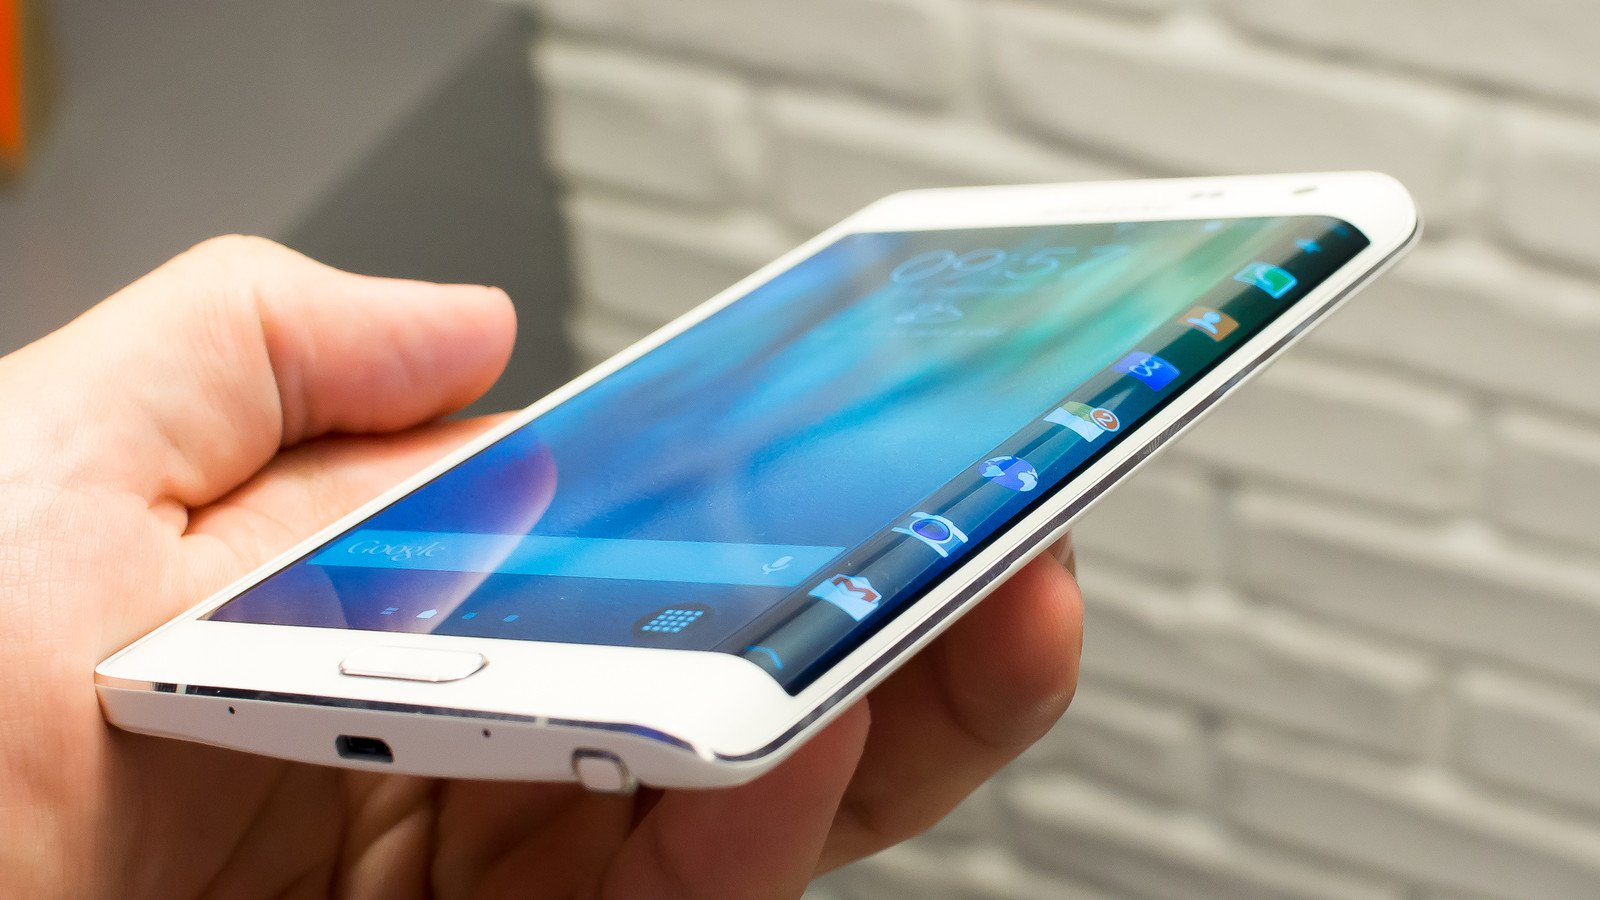 Samsung Galaxy Note Edge Outperforms Galaxy Note 4 In Benchmarks